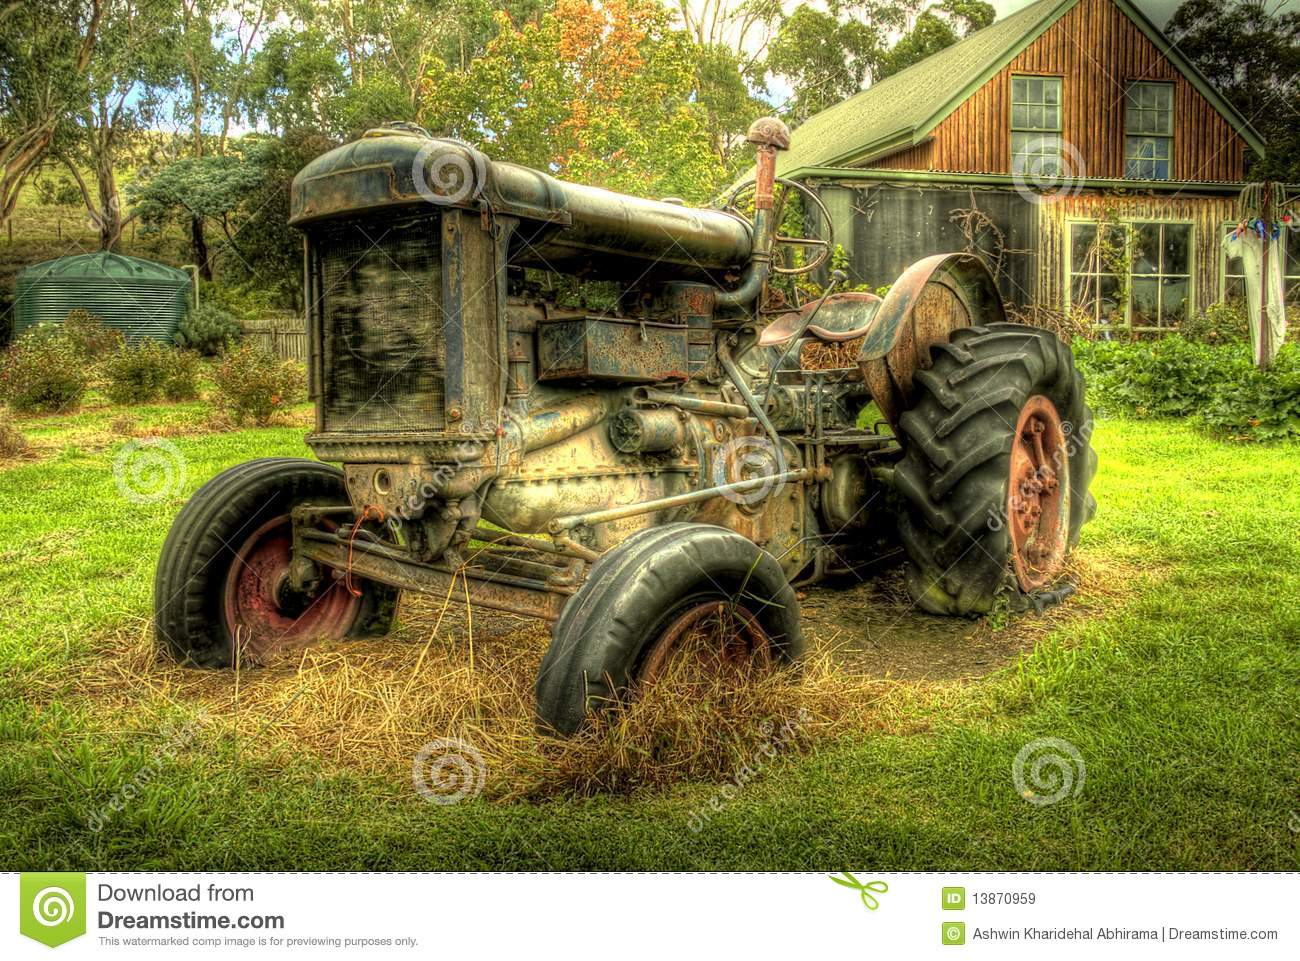 An Old Tractor in HDR